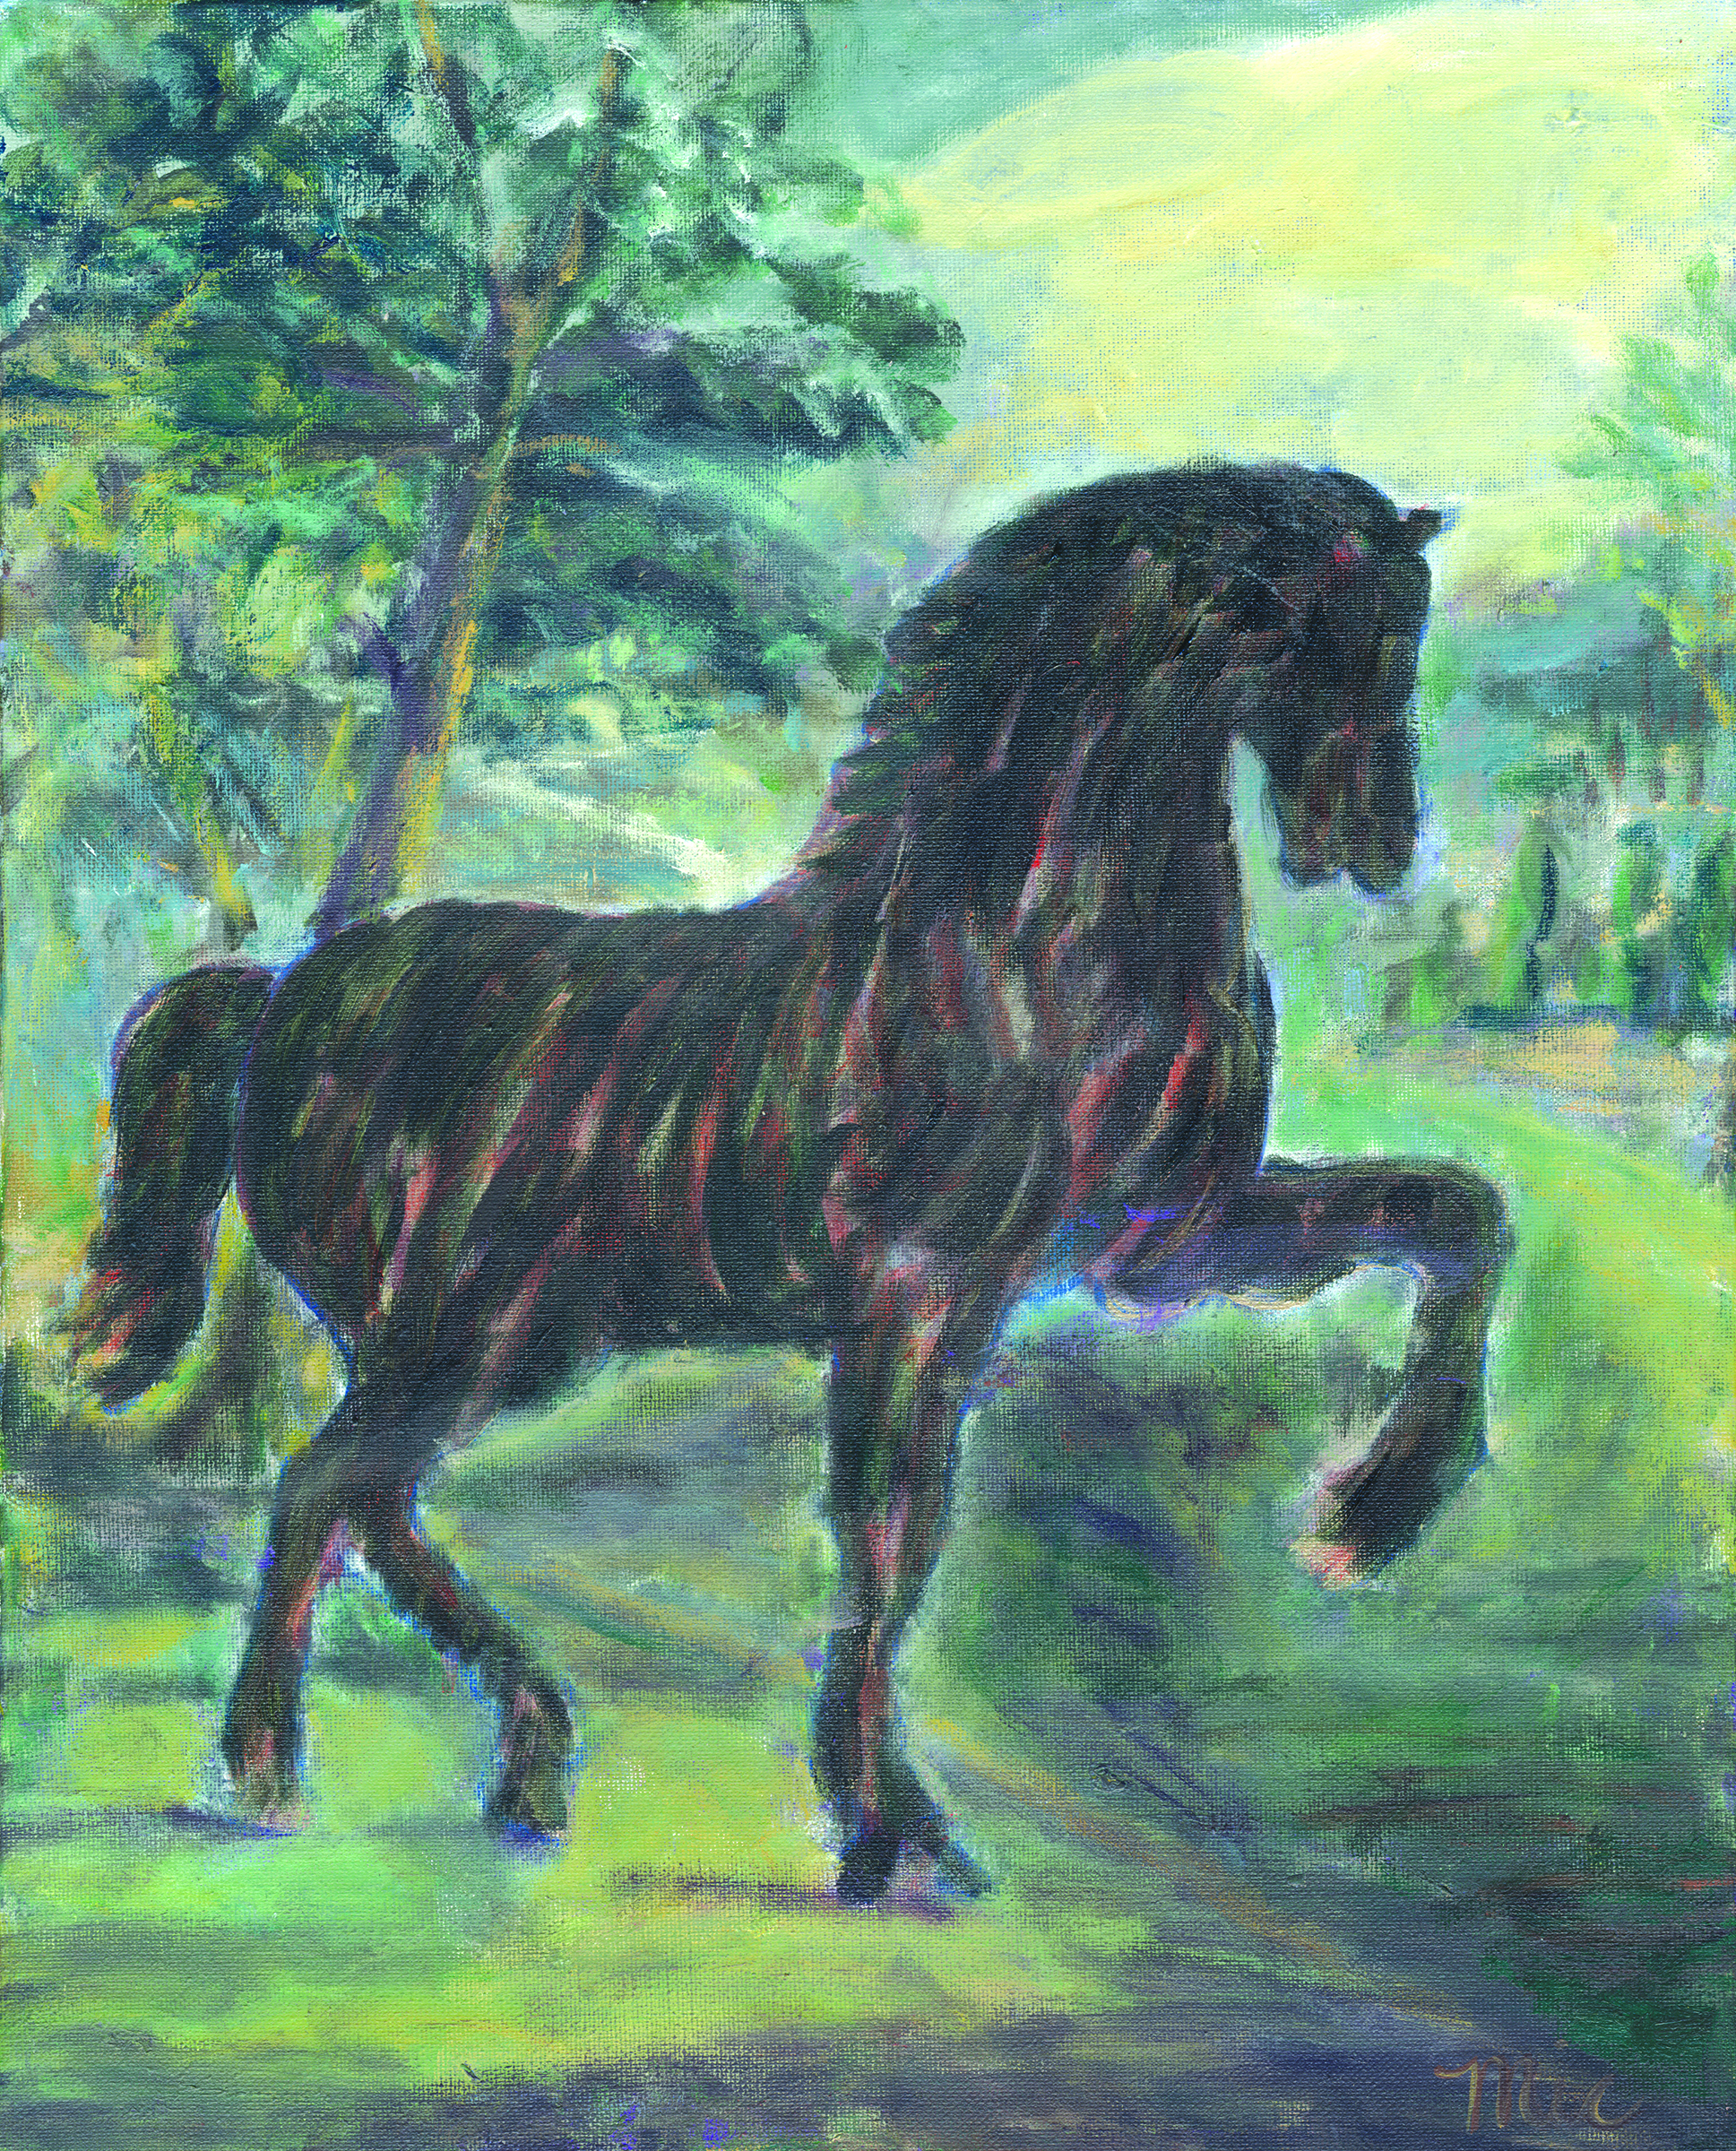 Da Vinci's Horse Escapes Meijer Gardens - Oil Pastel, Private collection Loni and David PaddenGiclee Limited Edition and canvas prints are available. Please visit the prints gallery.